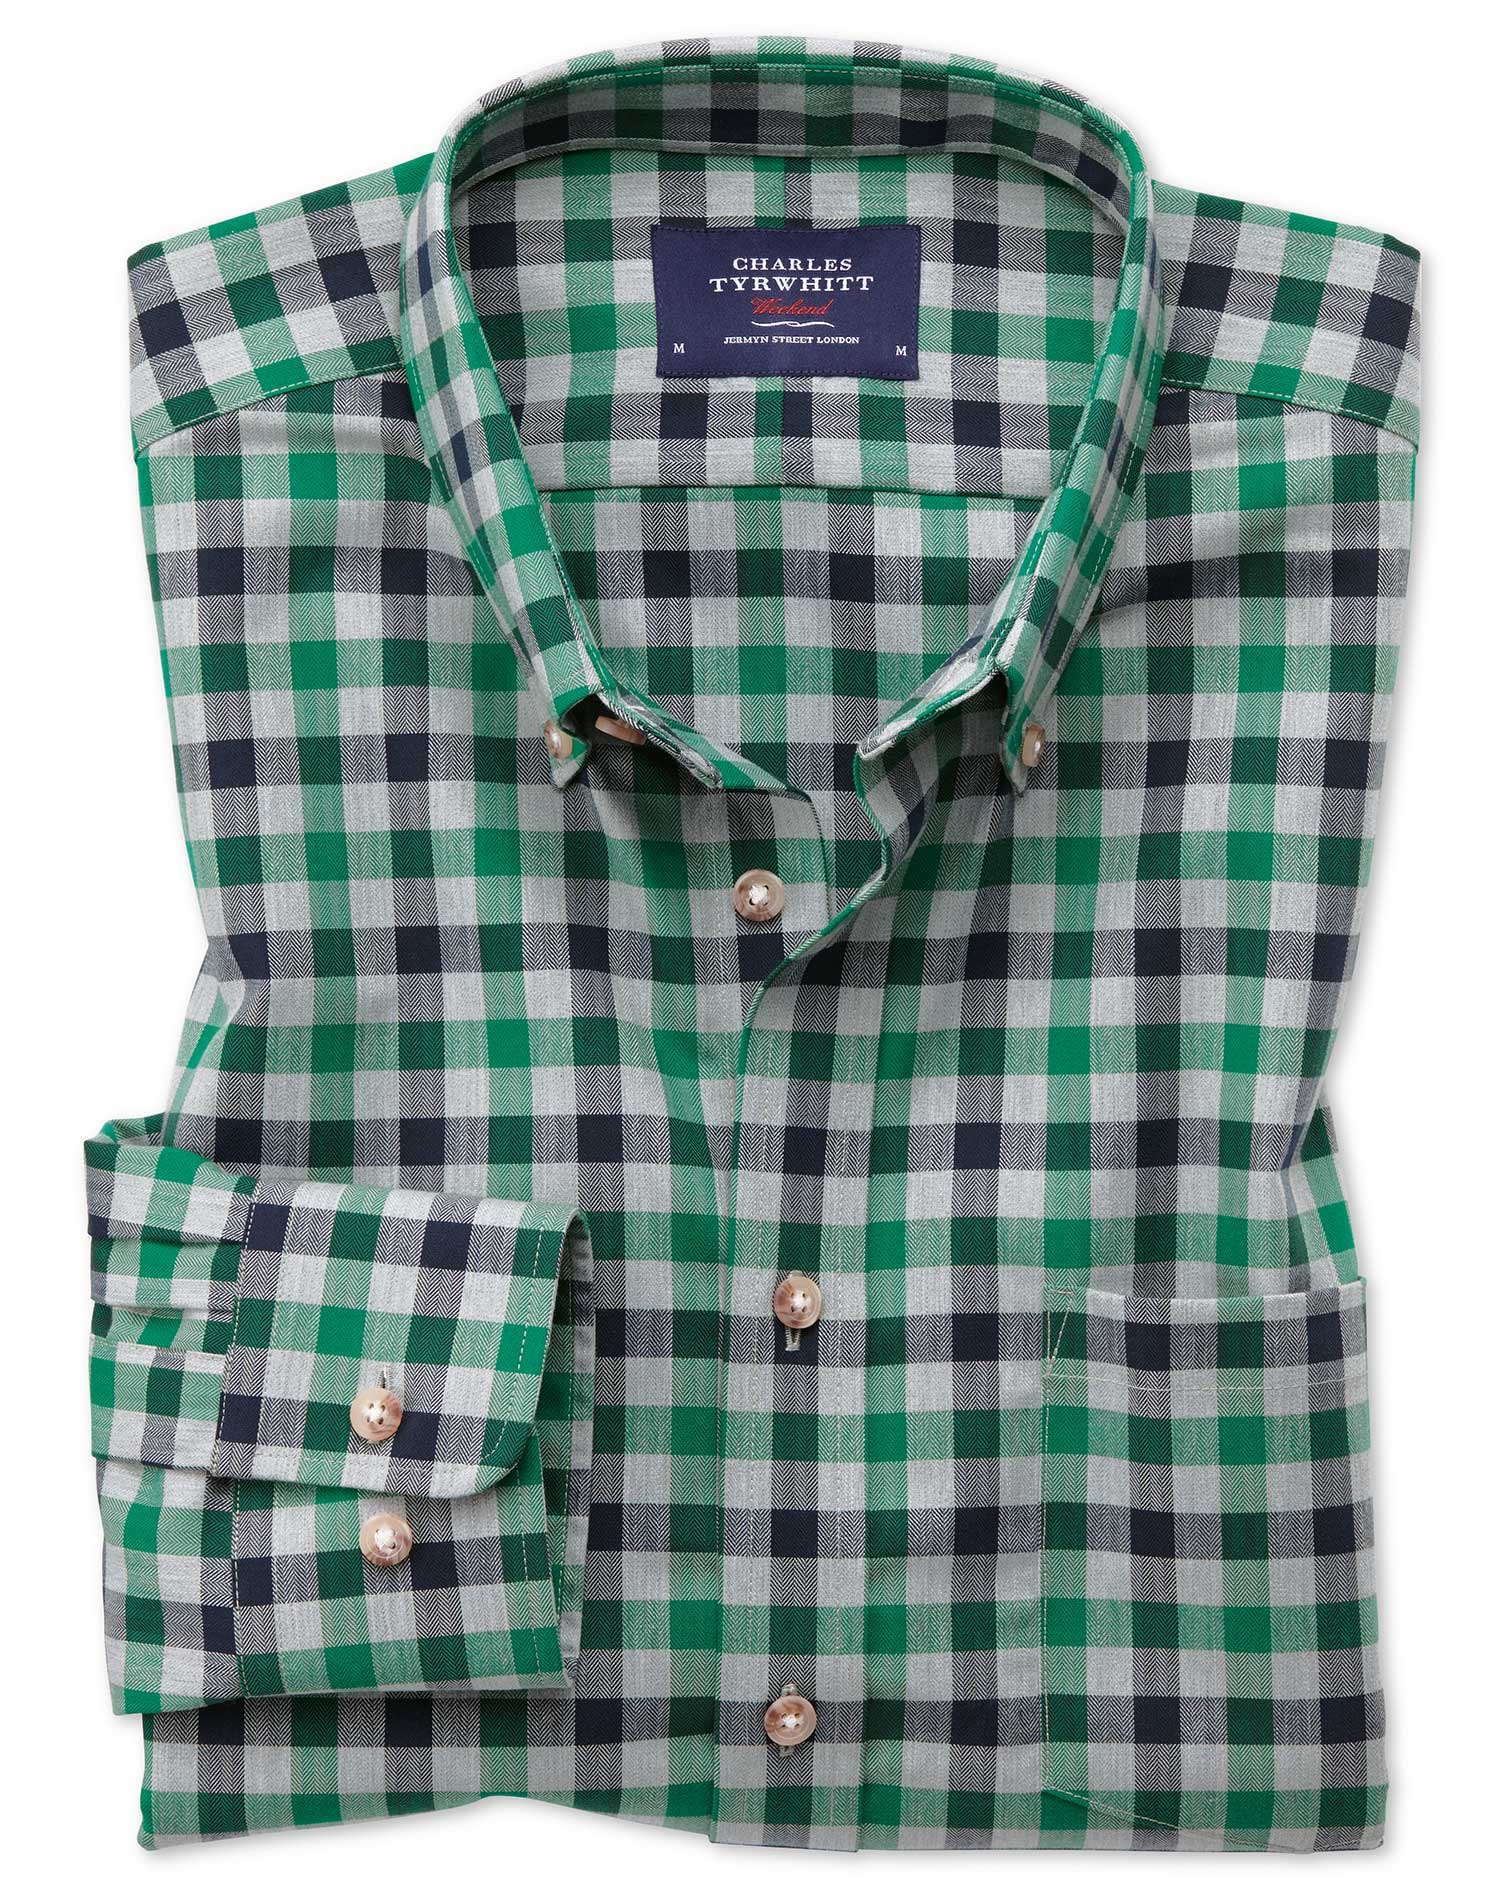 Classic Fit Button-Down Non-Iron Twill Green and Navy Gingham Cotton Shirt Single Cuff Size XL by Ch